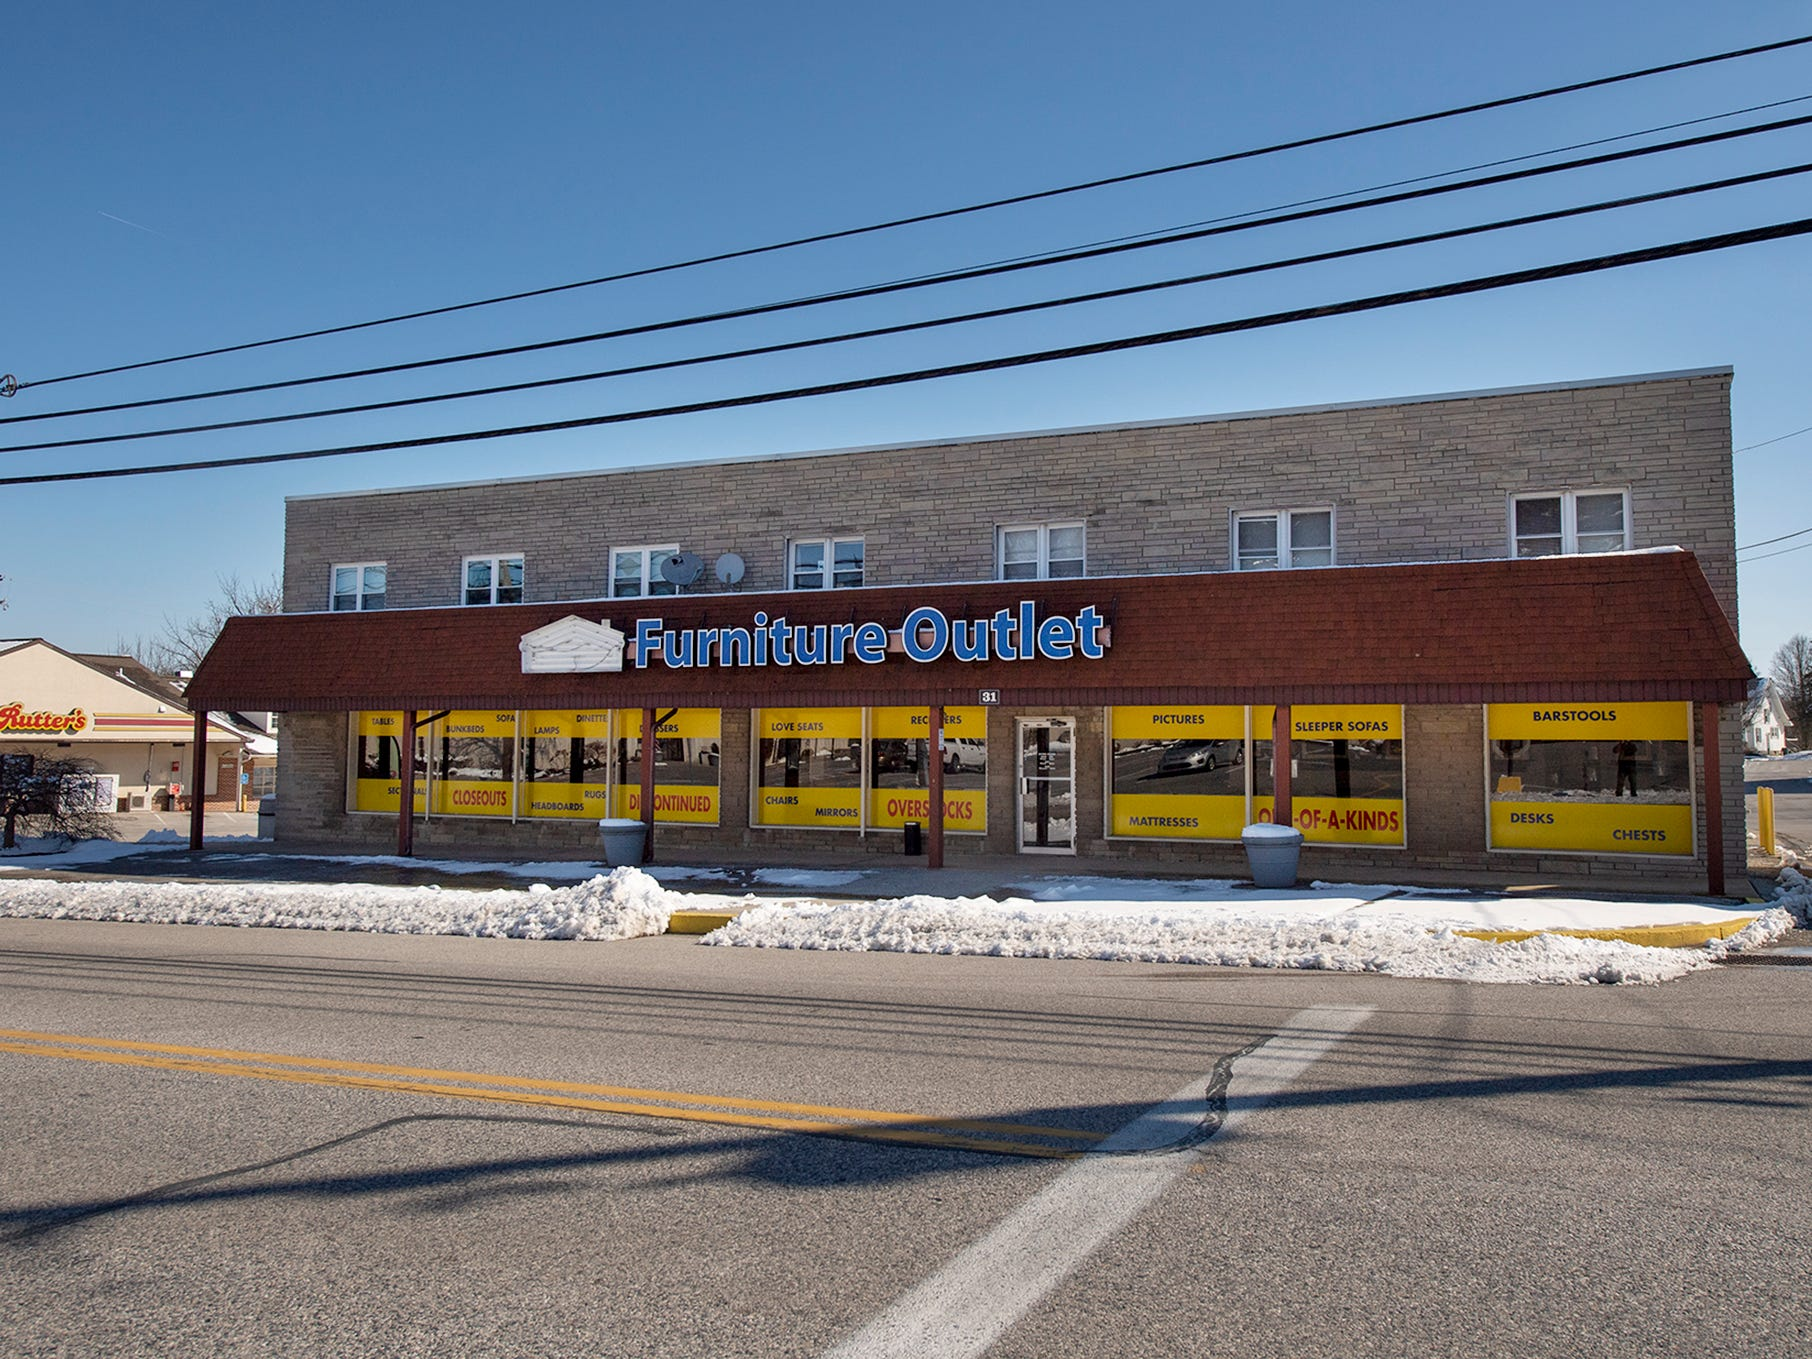 This is the Smith Village Furniture Outlet as it looks in 2019.